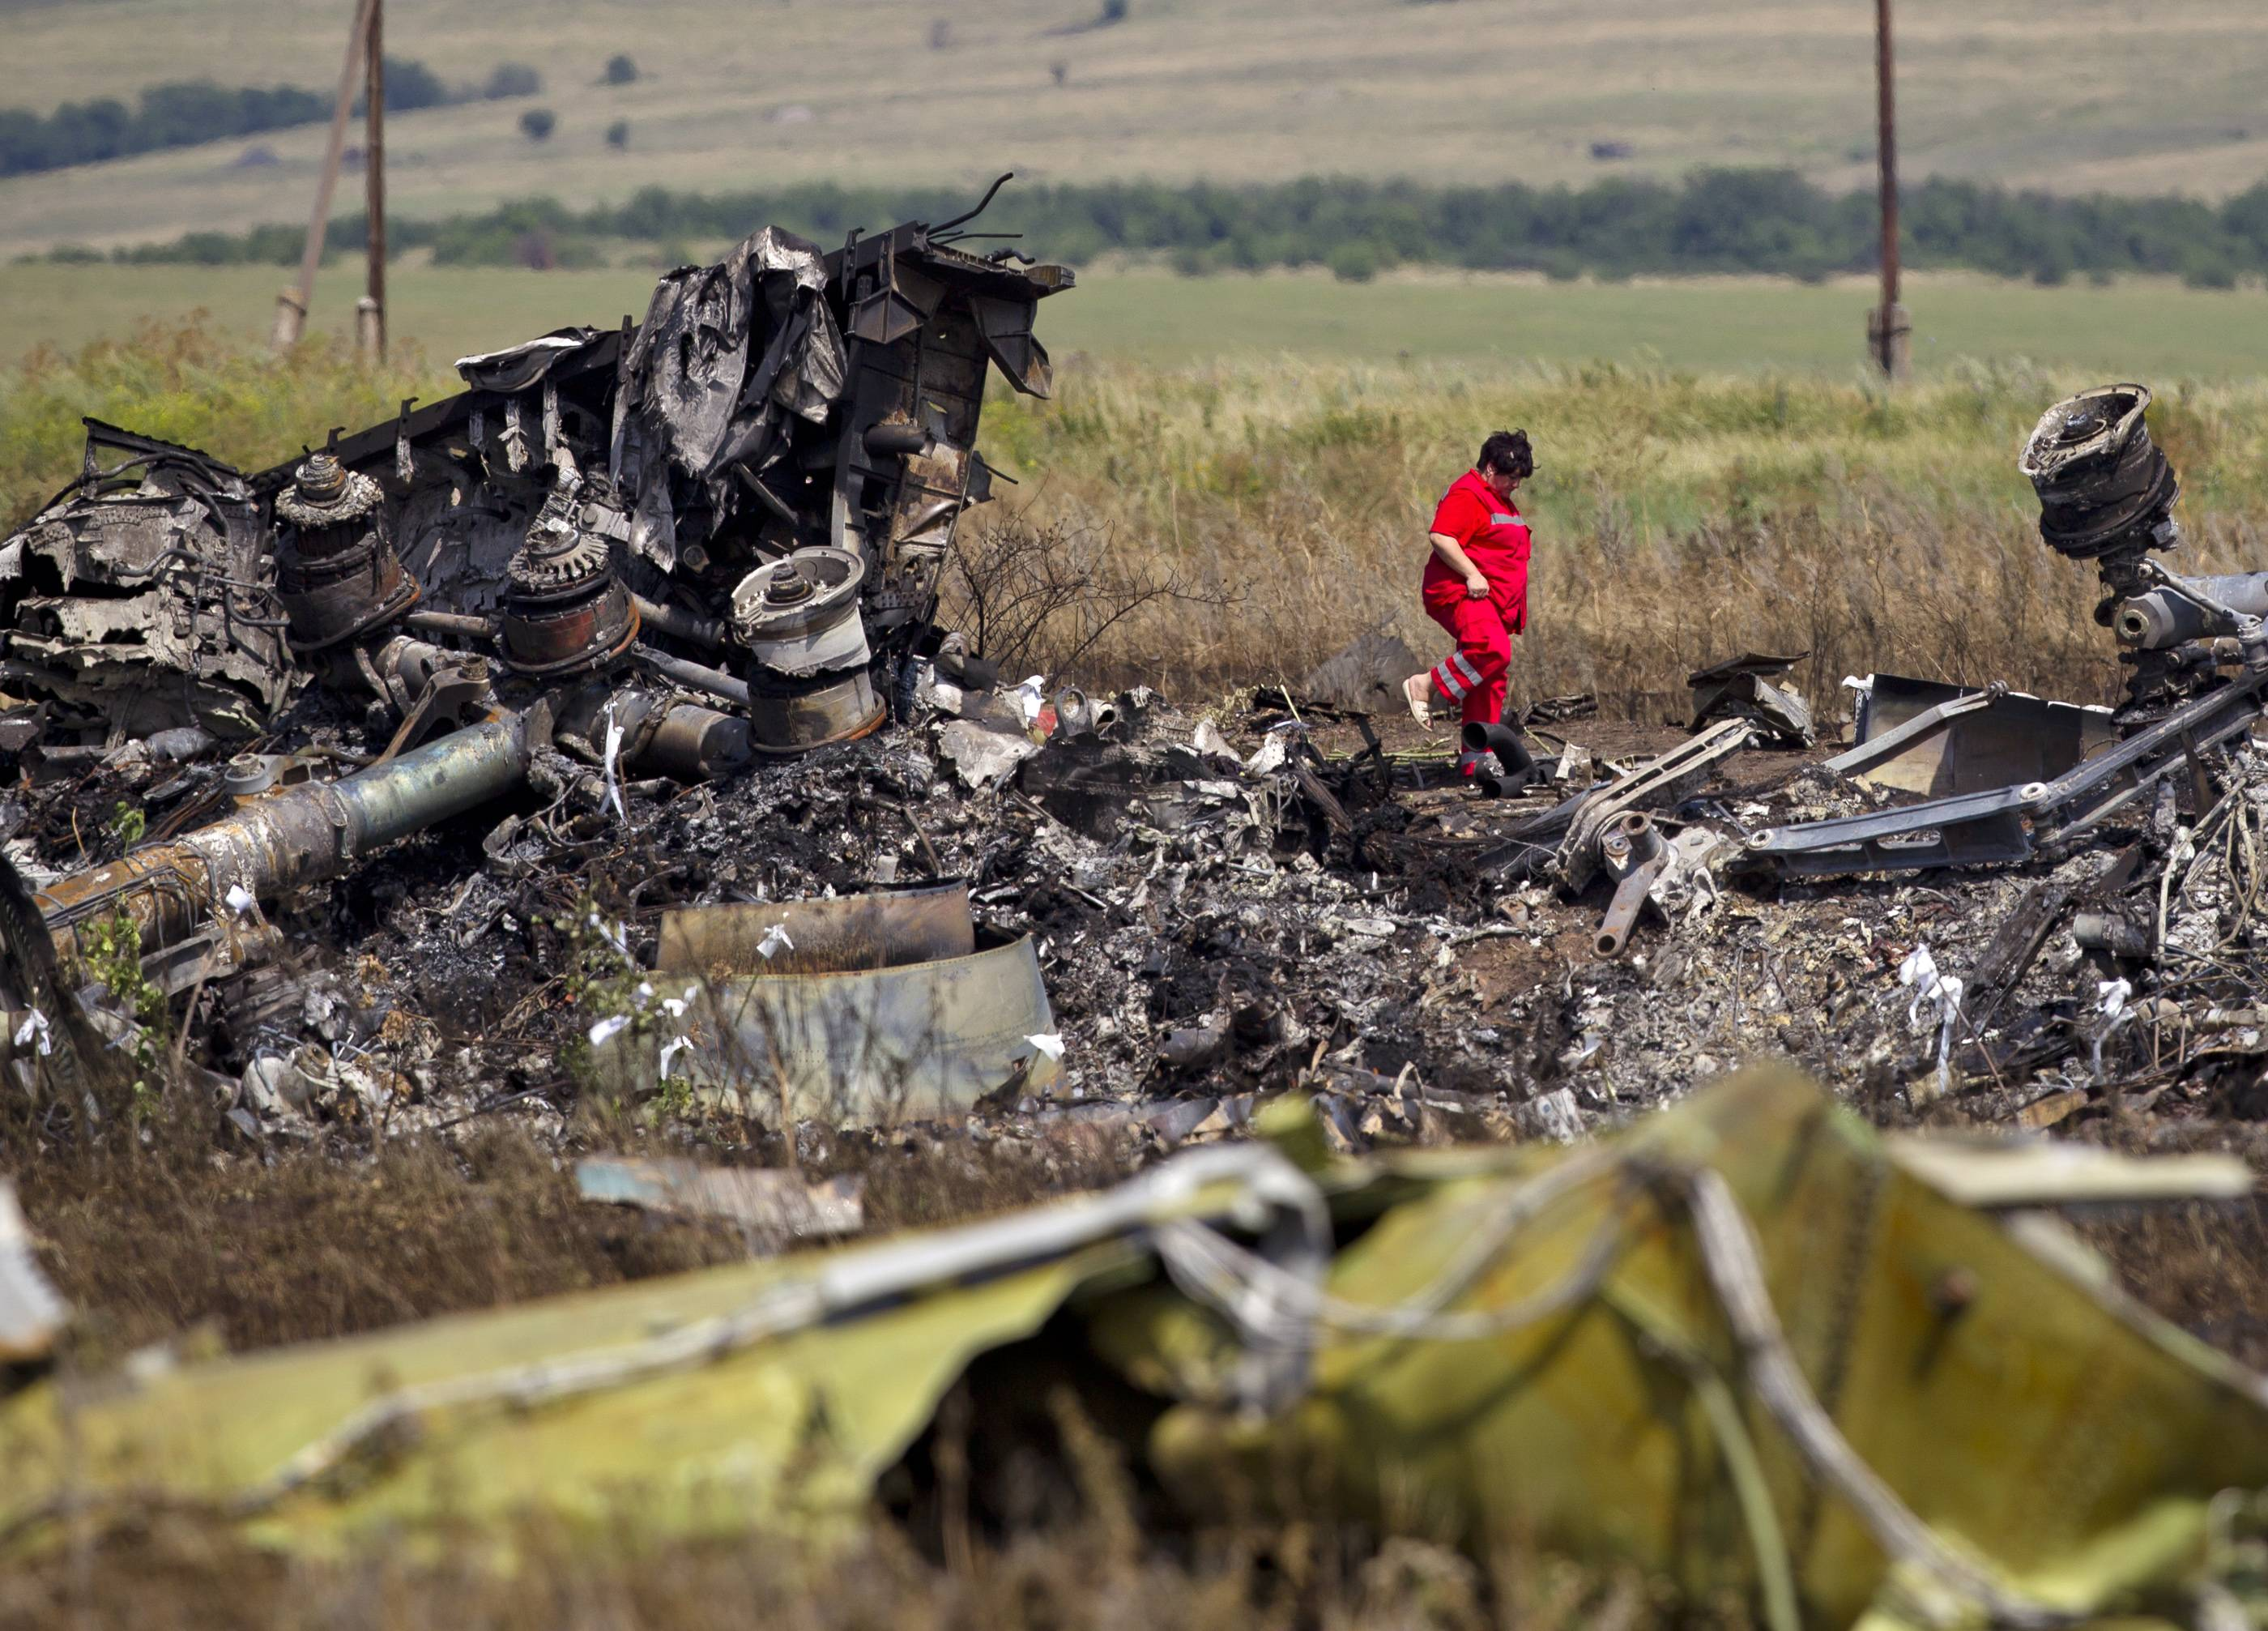 An Ukrainian paramedic walks amongst charred debris at the crash site of Malaysia Airlines Flight 17 near the village of Hrabove, eastern Ukraine, Sunday. Armed rebels forced emergency workers to hand over all 196 bodies recovered from the Malaysia Airlines crash site and had them loaded Sunday onto refrigerated train cars bound for a rebel-held city, Ukrainian officials and monitors said.